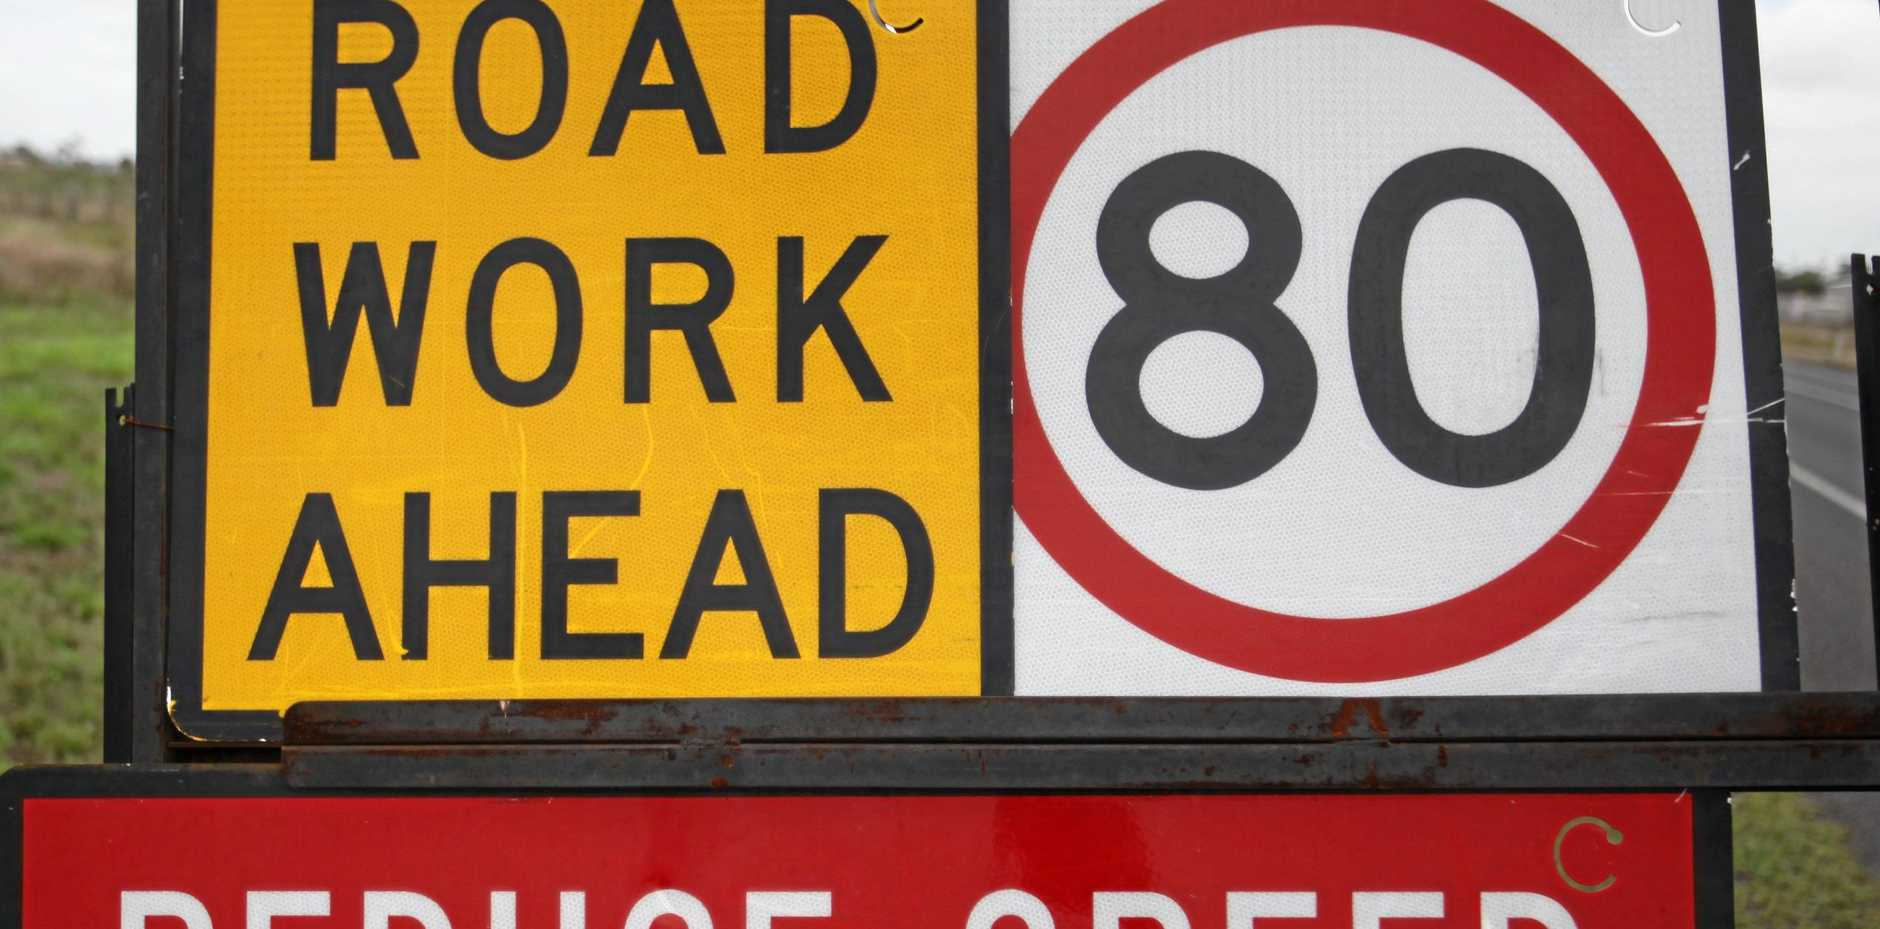 An increasing number of roads being neglected, according to a new report.